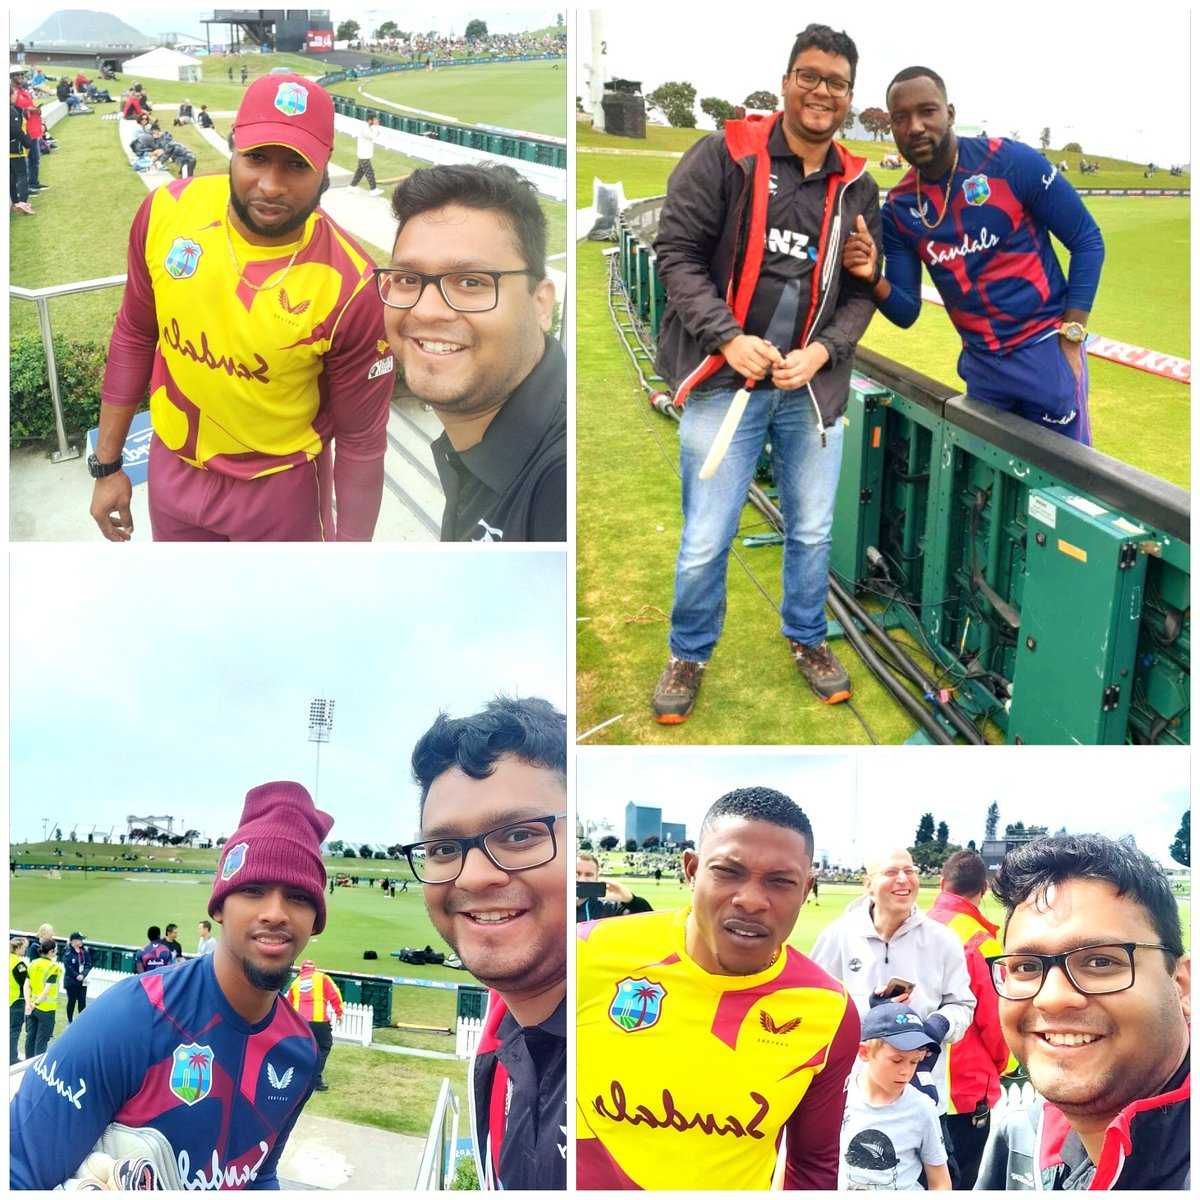 It was so good to meet the @windiescricket team this summer 😍🥳  @KieronPollard55 @BLACKCAPS #NZvWI #MenInMaroon #cricket #westindies #windies #pollard #kieronpollard #nicholaspooran #kesrickwilliams #sheldoncottrell #salute #TeamWI @BrianLara